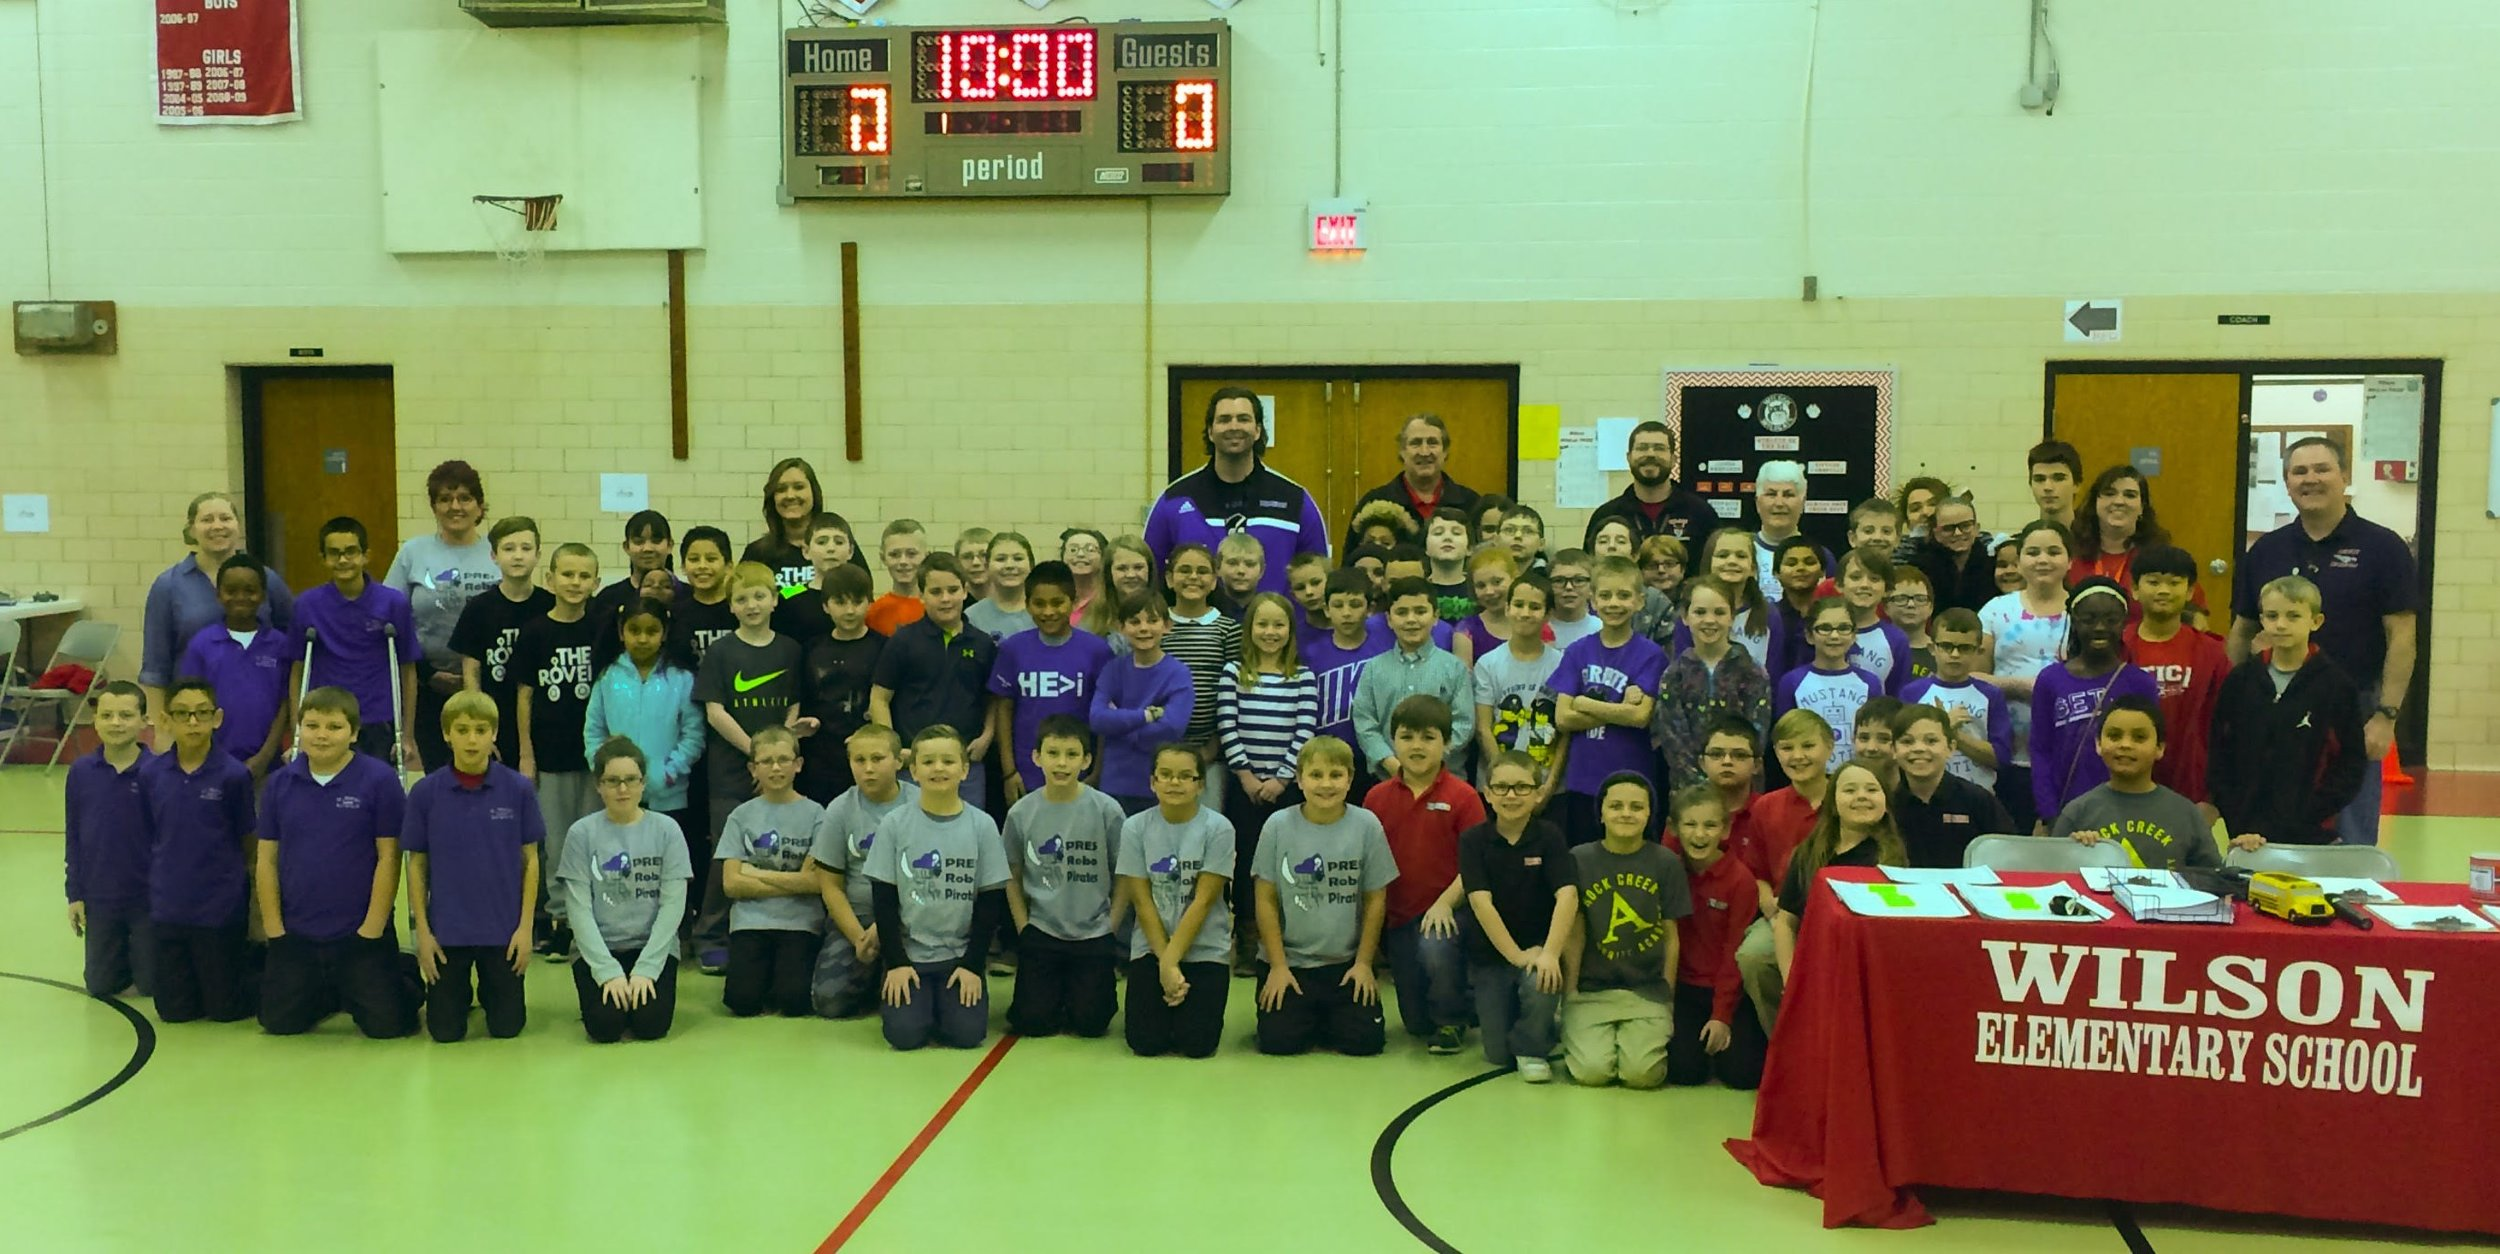 Teams from all elementary schools in Greater Clark County gathered for a scrimmage in February 2017.